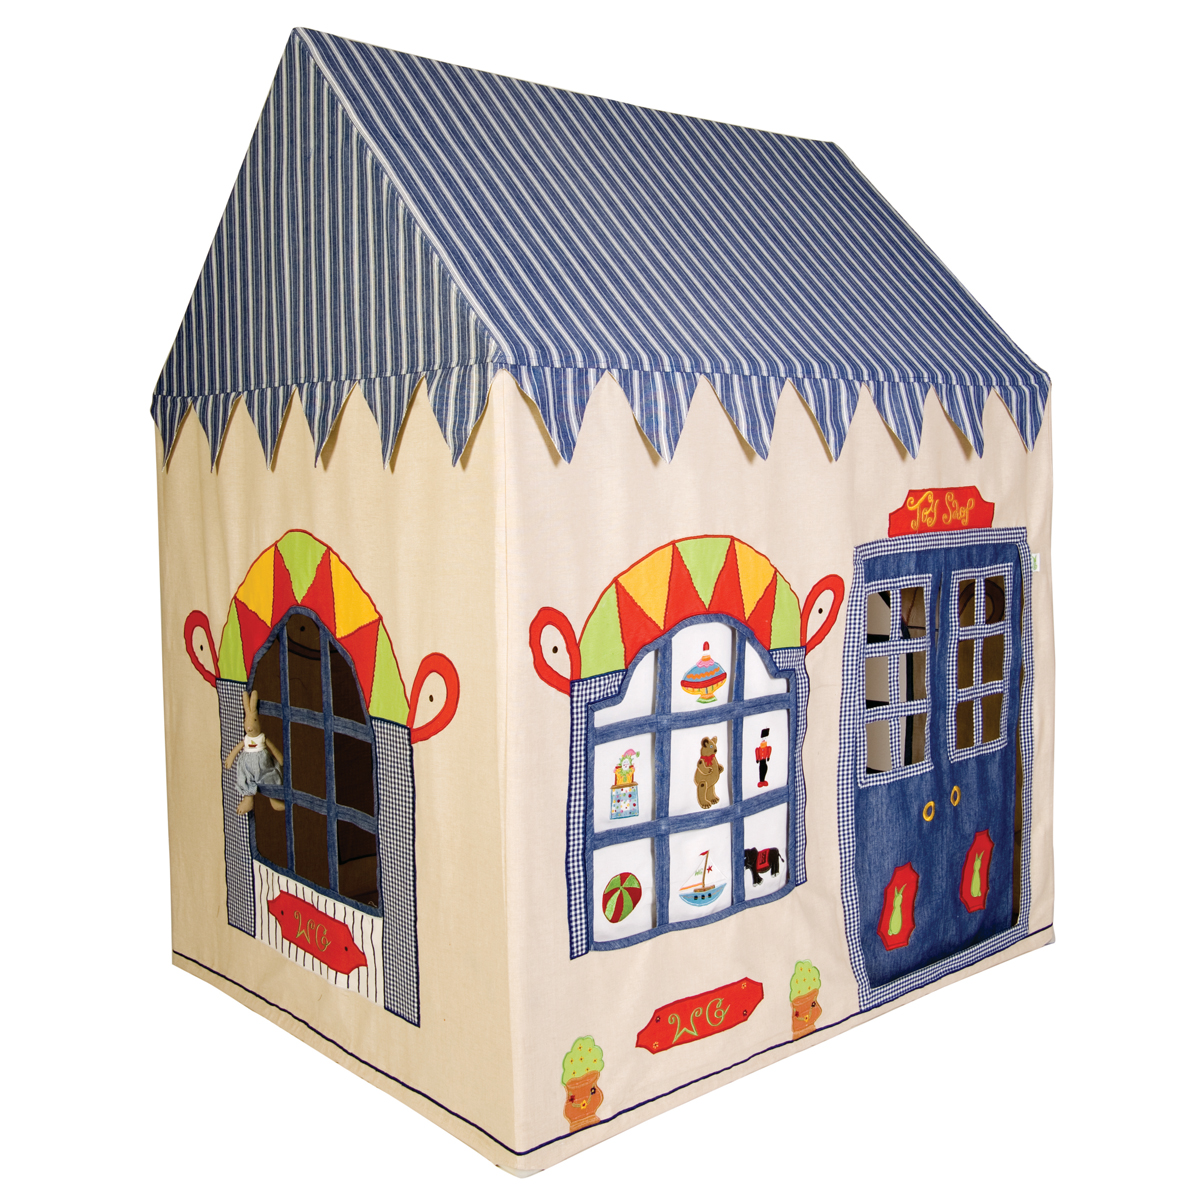 Appliqued Playhouse, Toy Shop Thumbnail 7